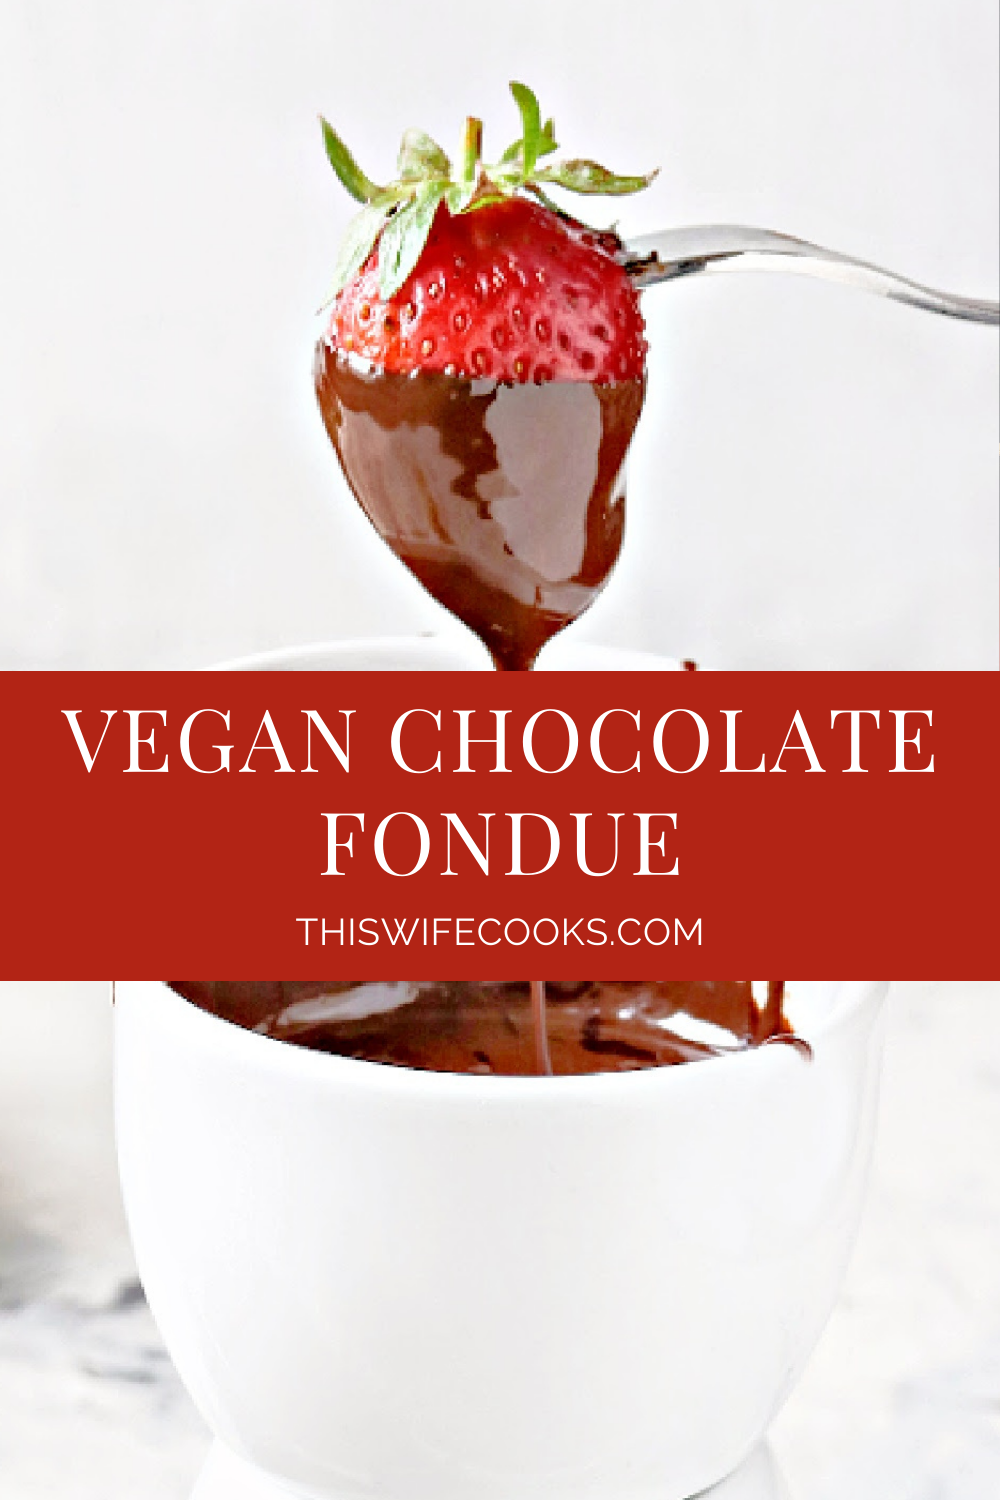 Vegan Chocolate Fondue - Decadent and dairy-free! Simple to make for a fun interactive family dessert or date night experience at home. via @thiswifecooks